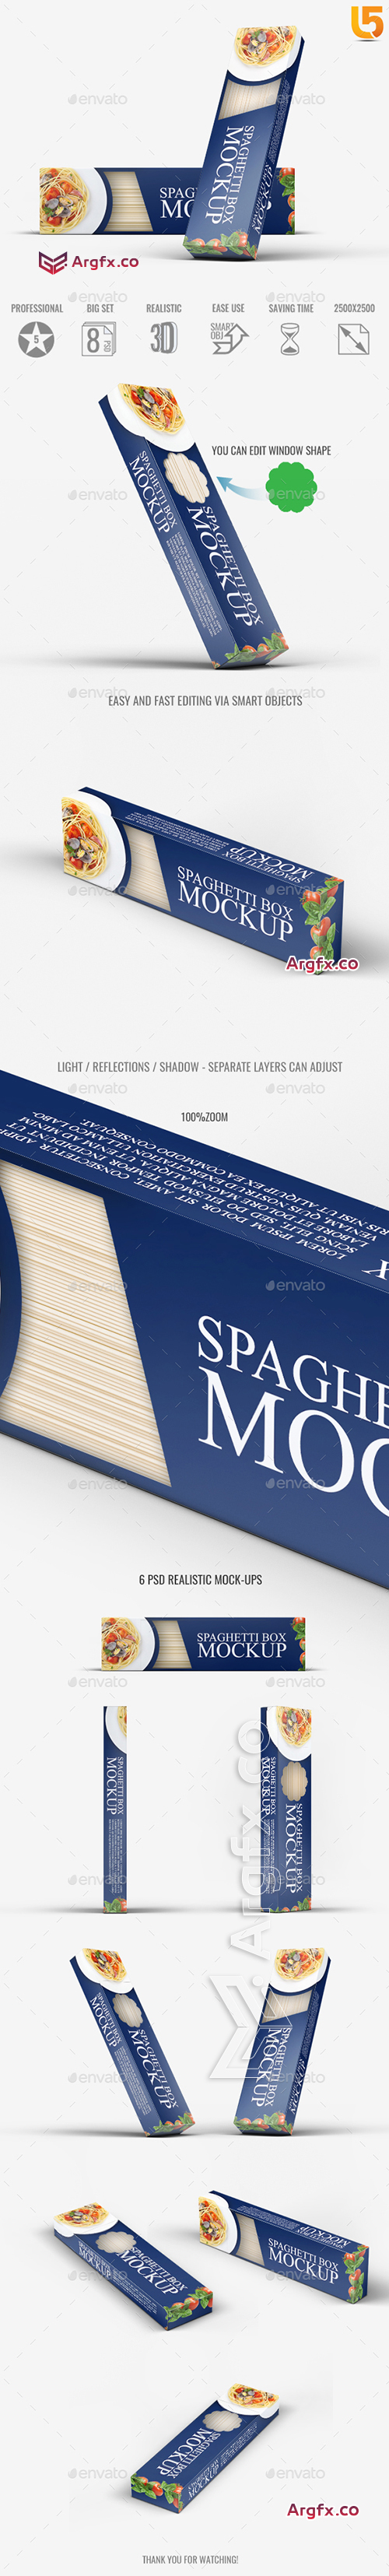 GraphicRiver - Spaghetti Box Mock-up 22600329